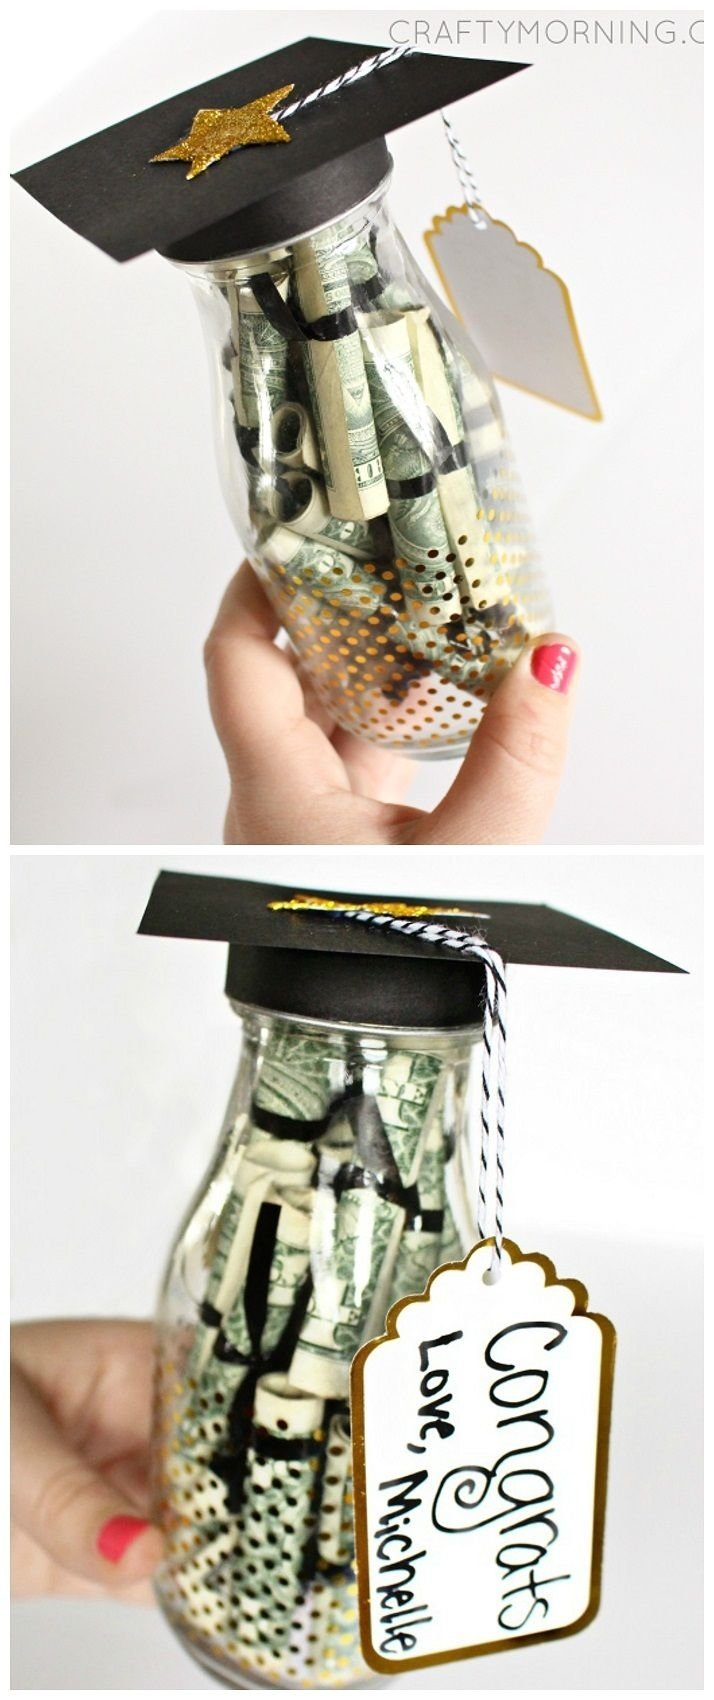 10 Awesome Graduation Gift Ideas For Girls 157 best graduation gift ideas images on pinterest graduation 13 2020